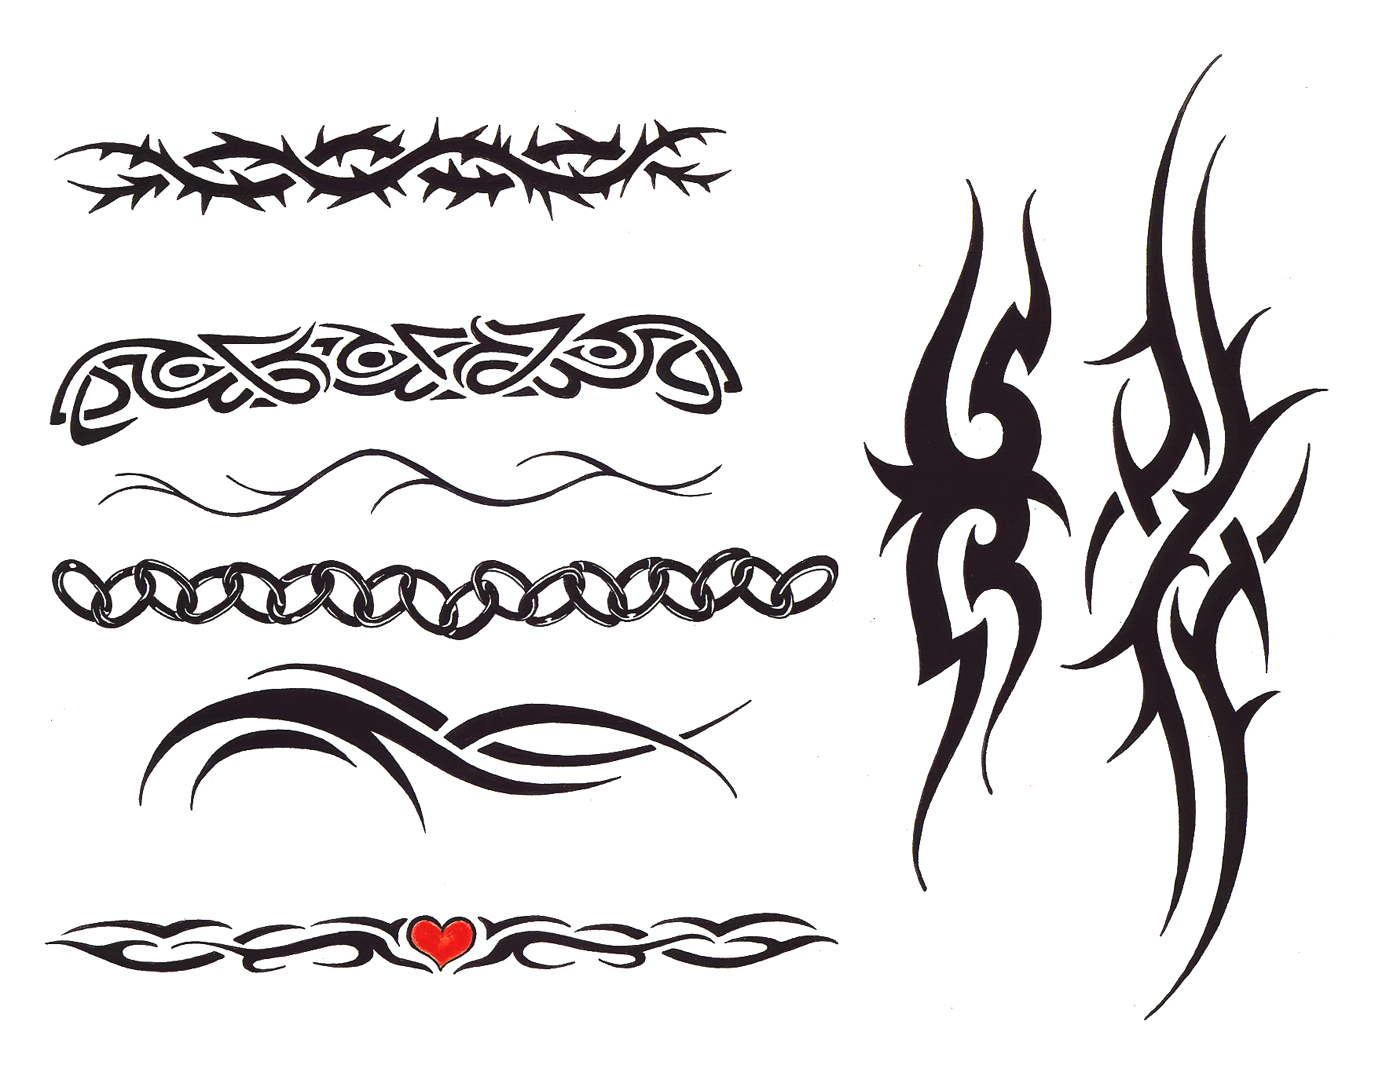 Tattoo Download [jpeg] or Download [zip]